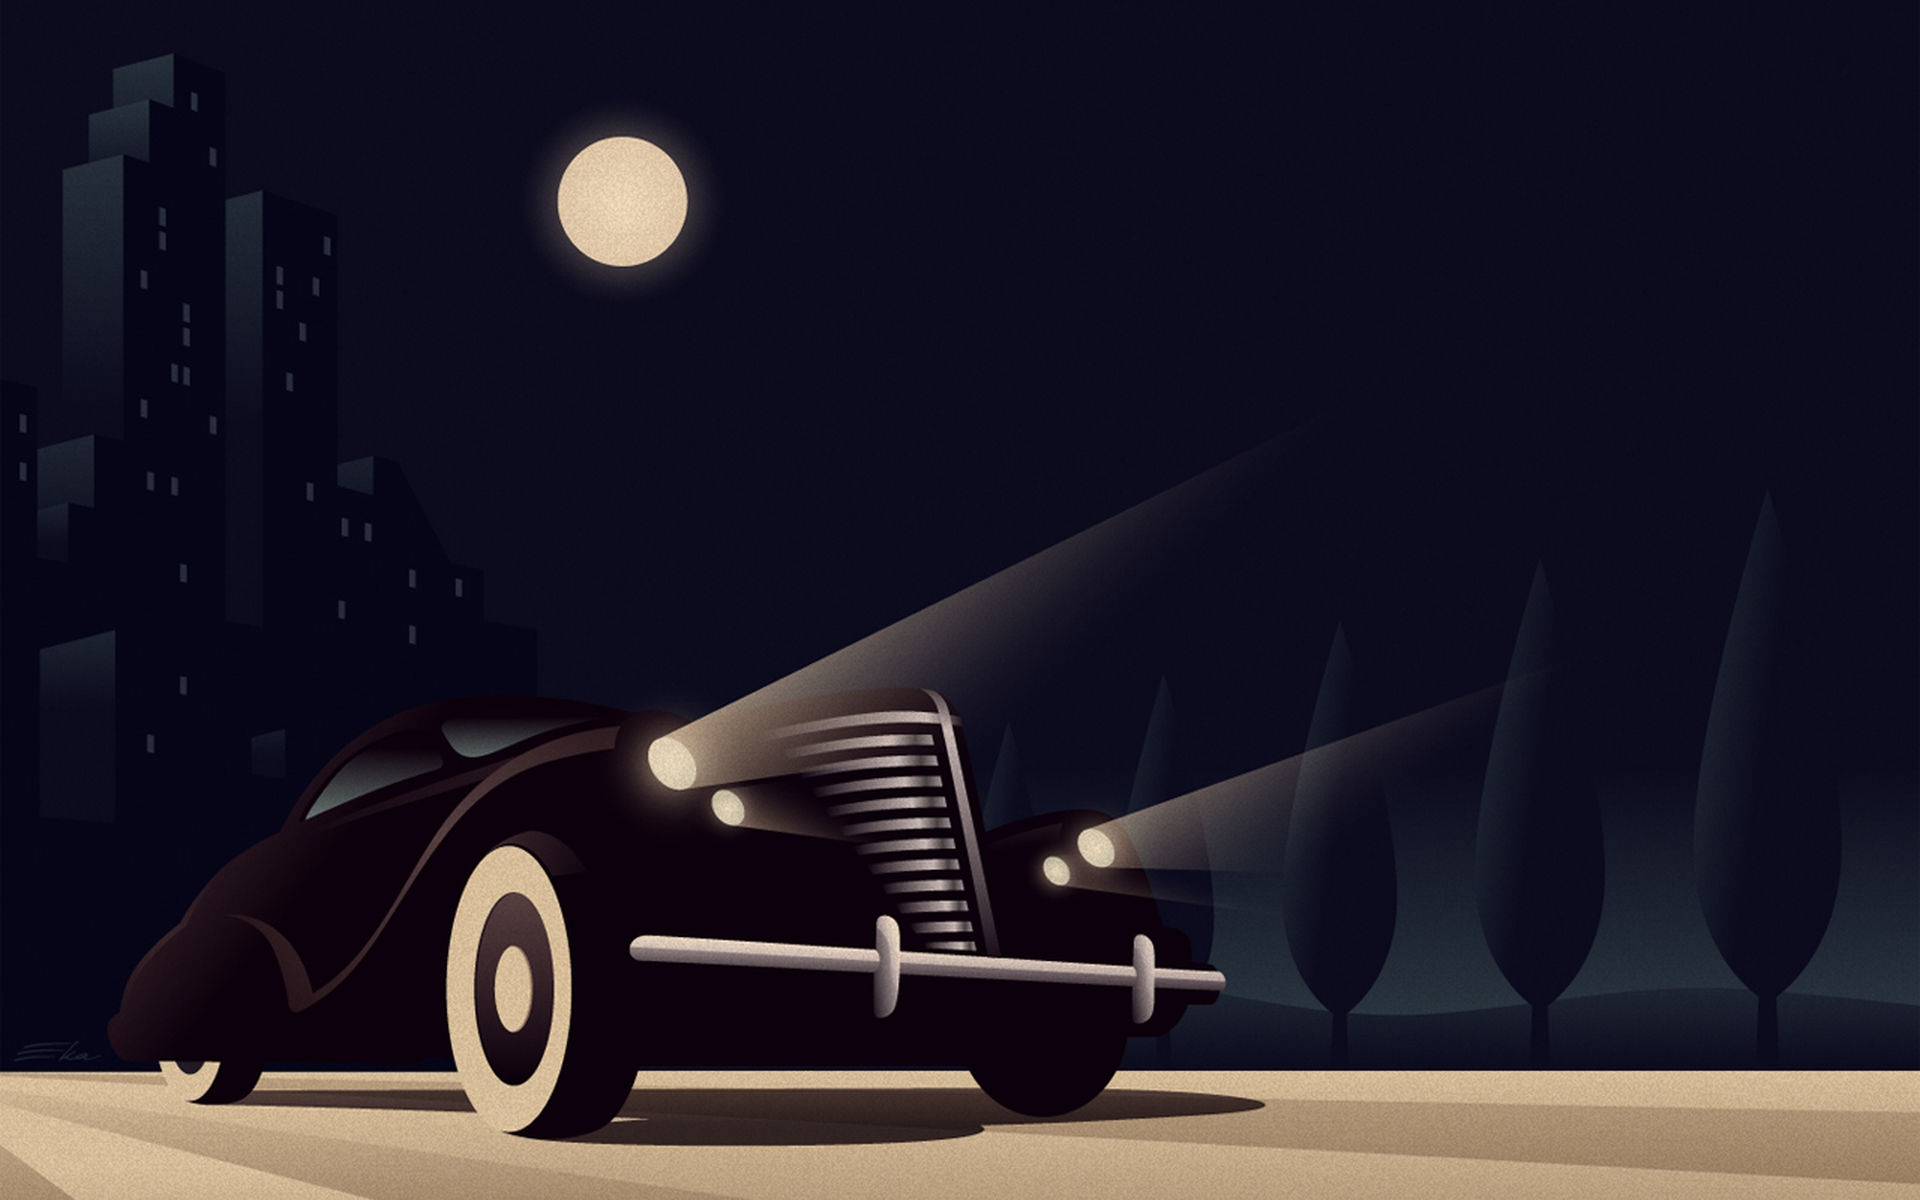 Art Deco Desktop Wallpaper